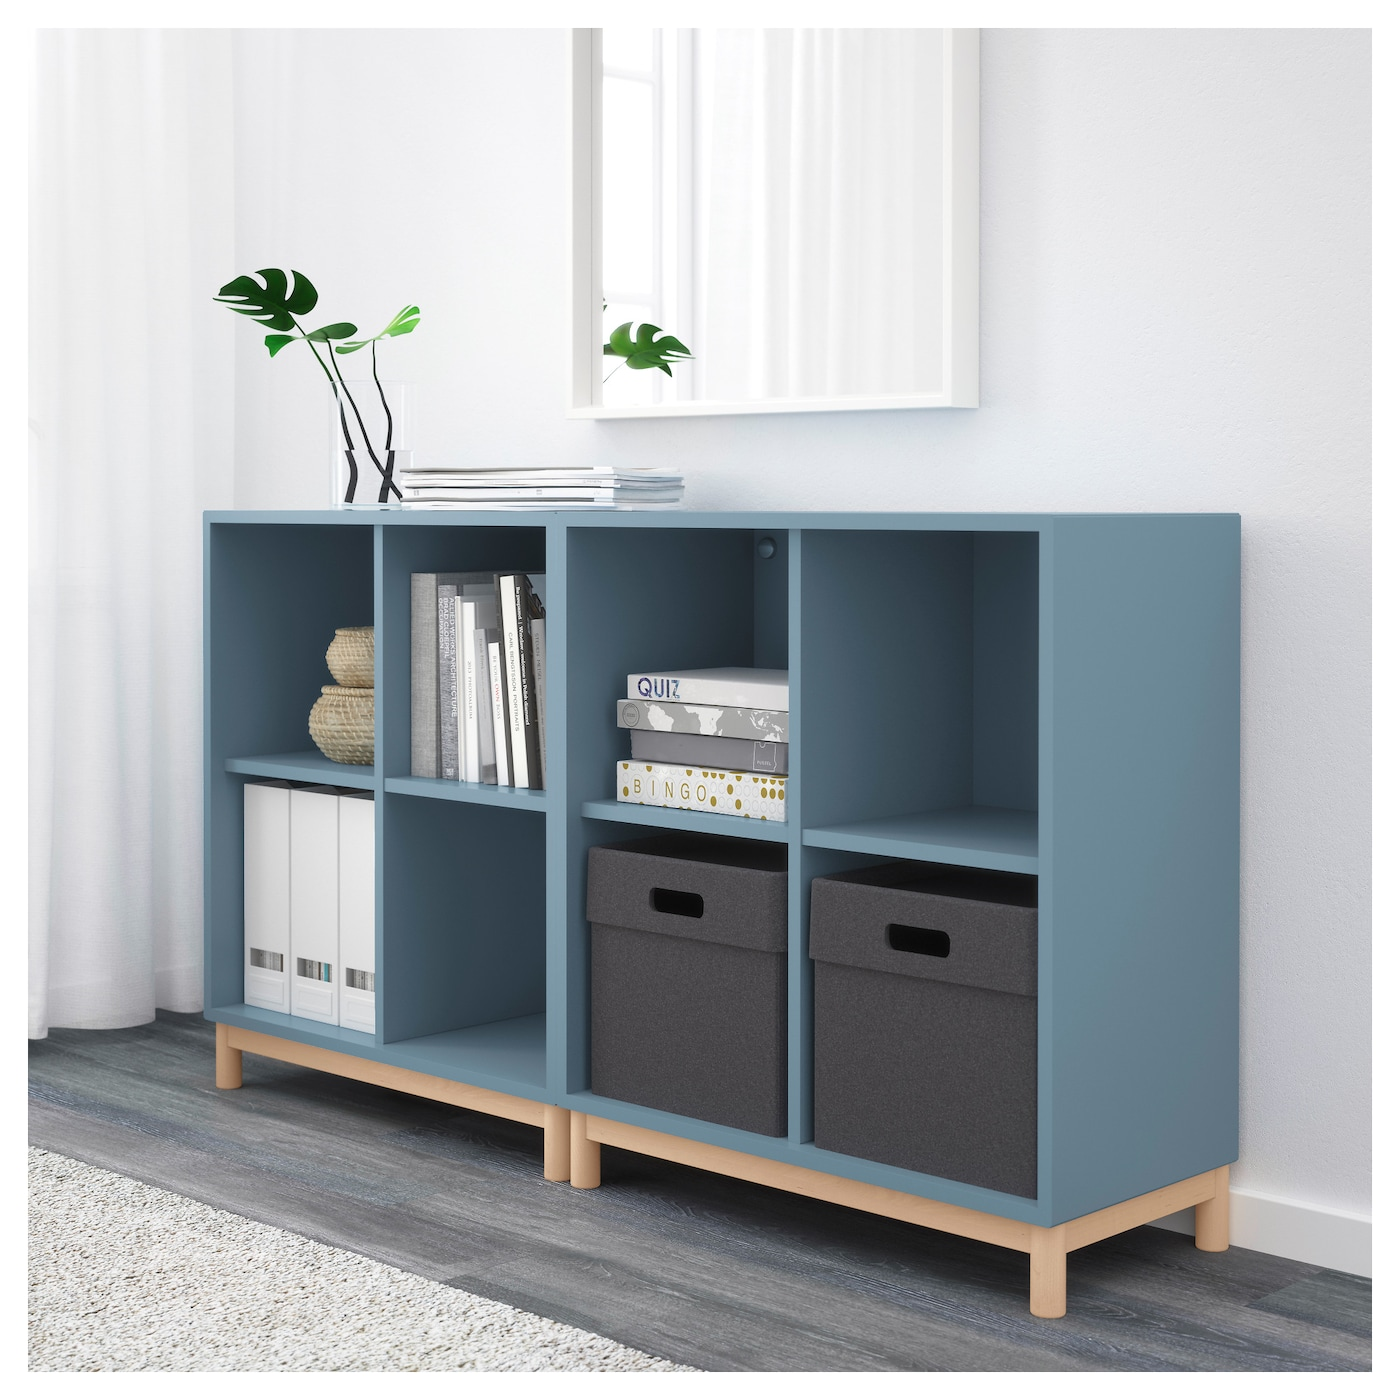 eket cabinet combination with legs light blue 140 x 35 x 80 cm ikea. Black Bedroom Furniture Sets. Home Design Ideas